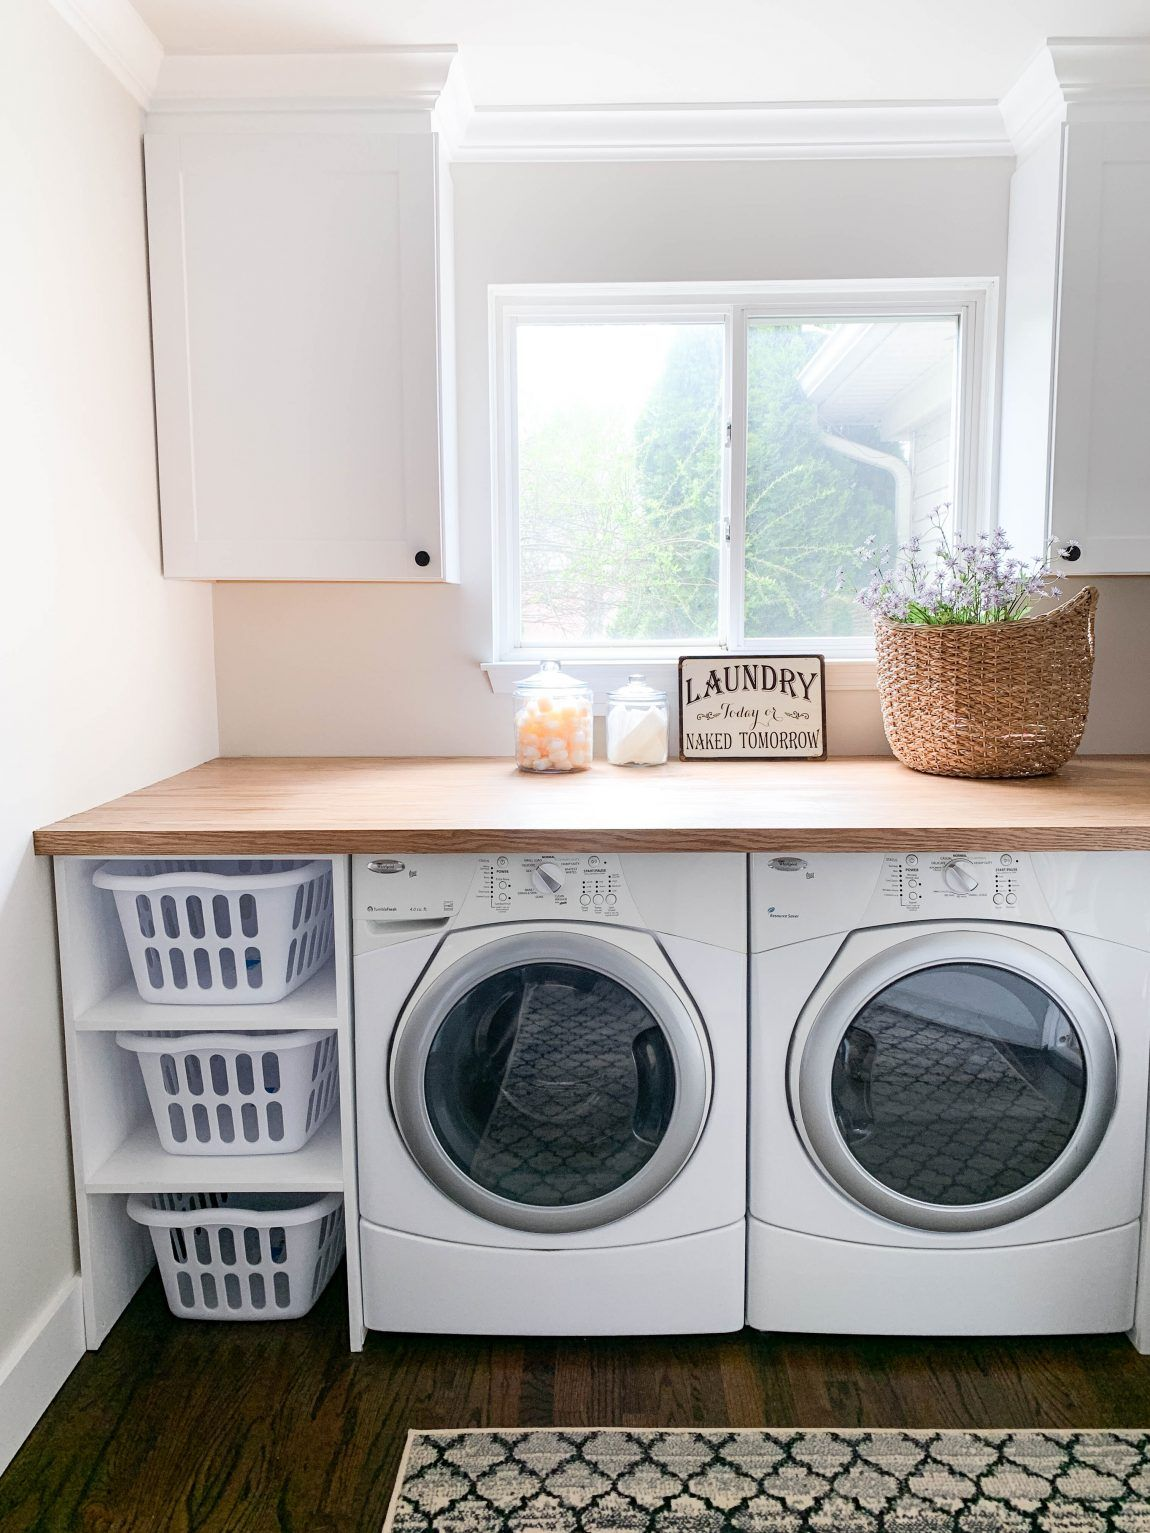 CREATING A PINTEREST PERFECT LAUNDRY ROOM - CLARK + ALDINE